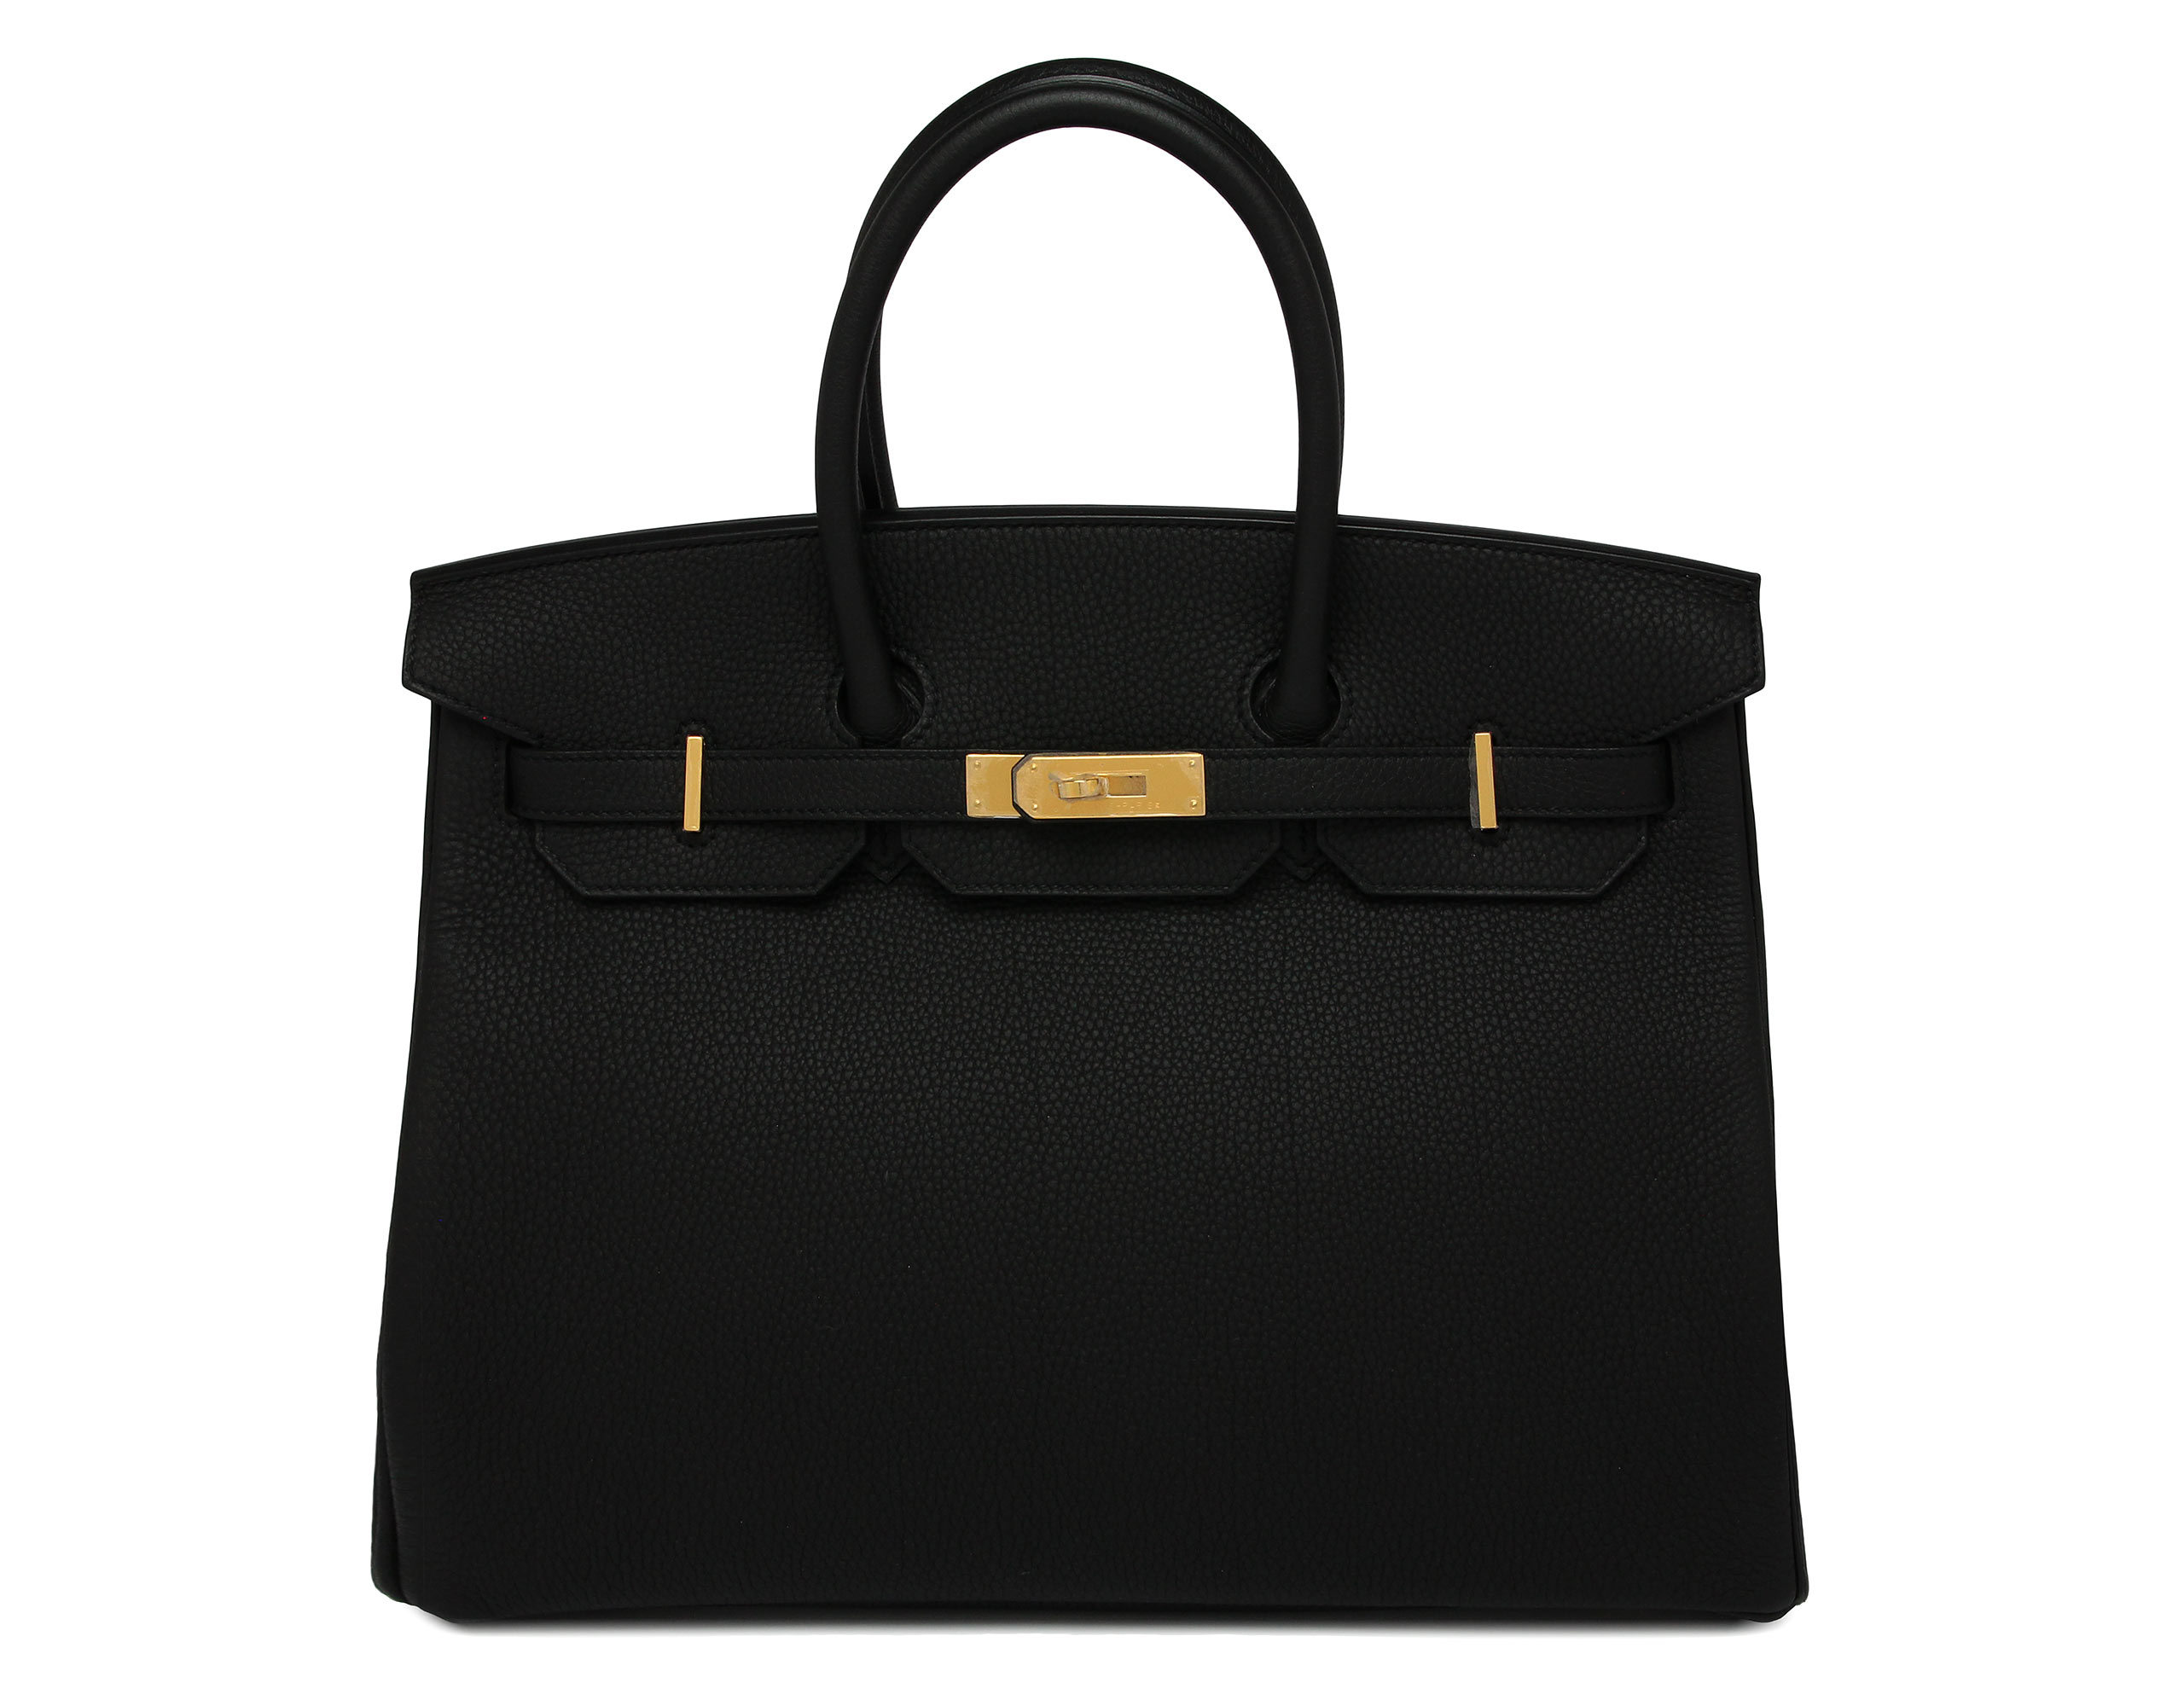 60c0ad3359 Hermes Birkin Black 35cm Togo with Gold